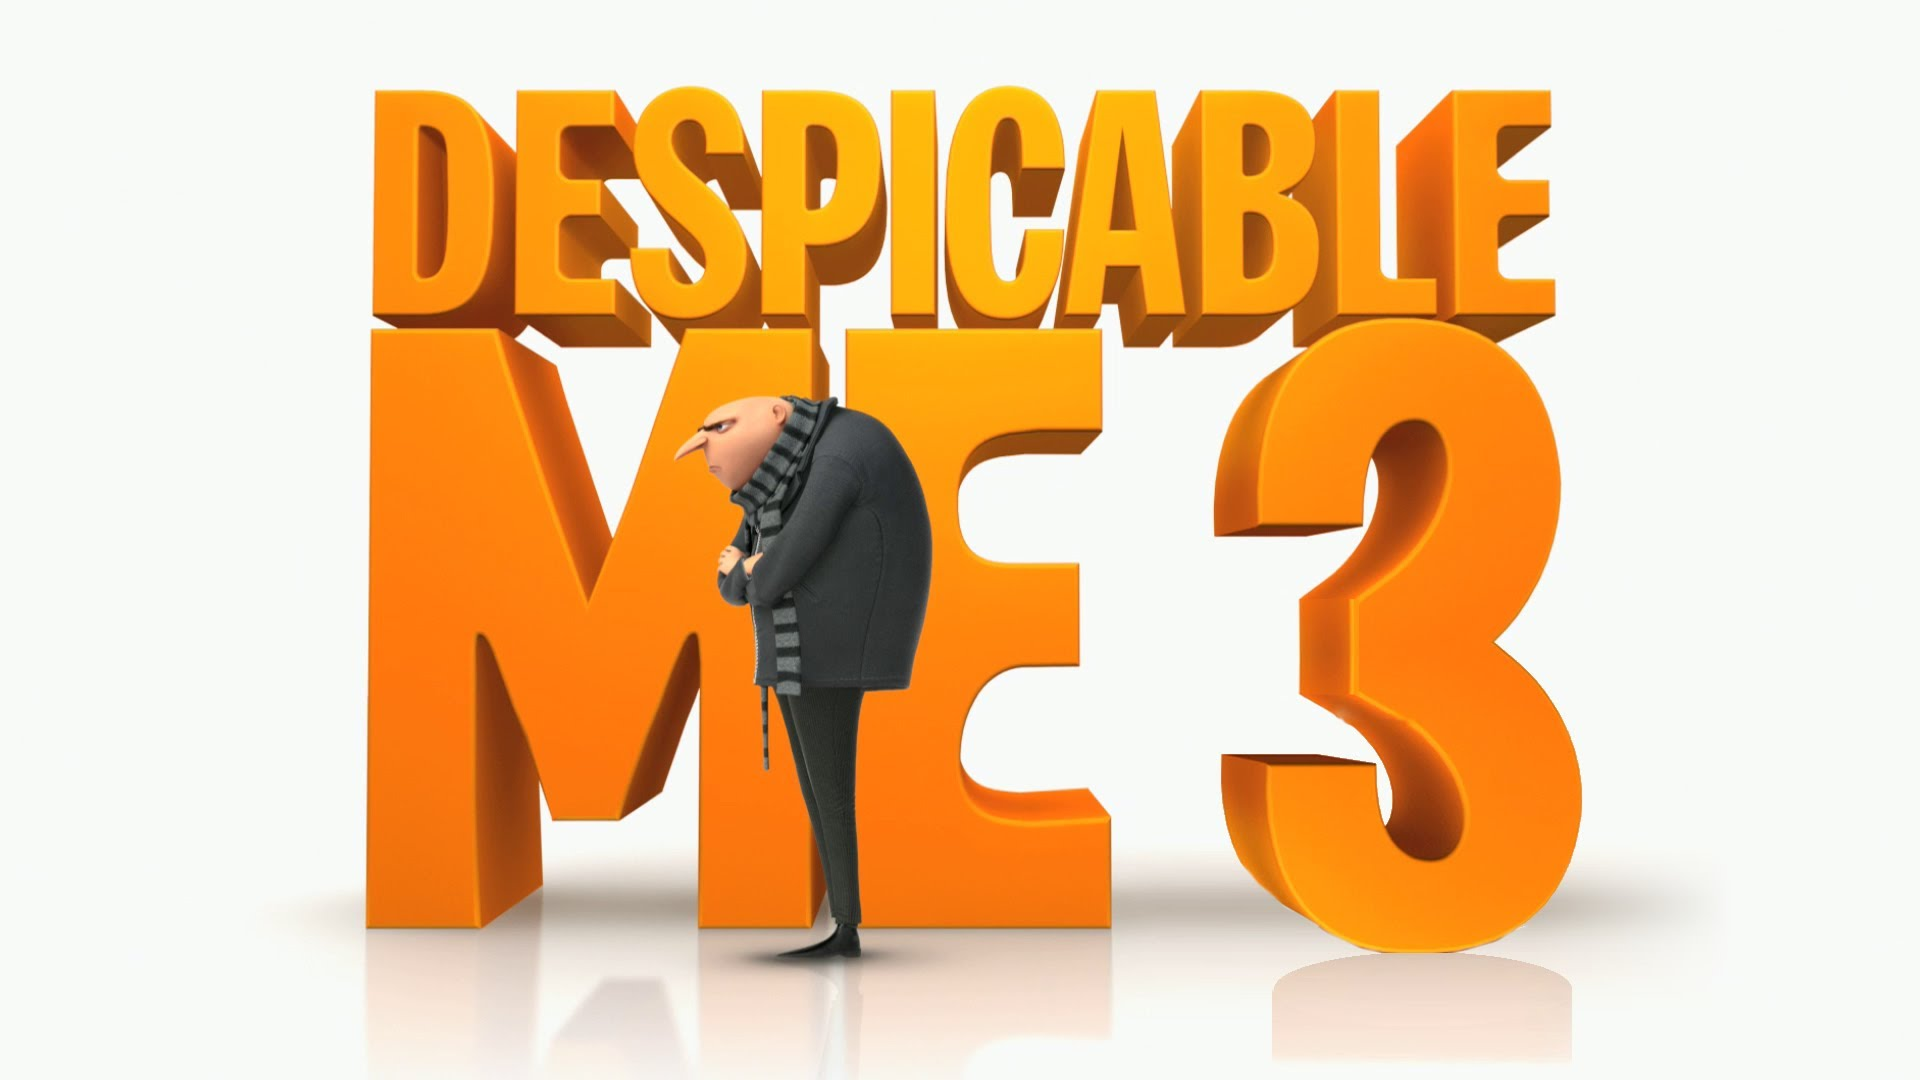 Permalink to Despicable Me 3 (2017) HDRip Subtitle Indonesia